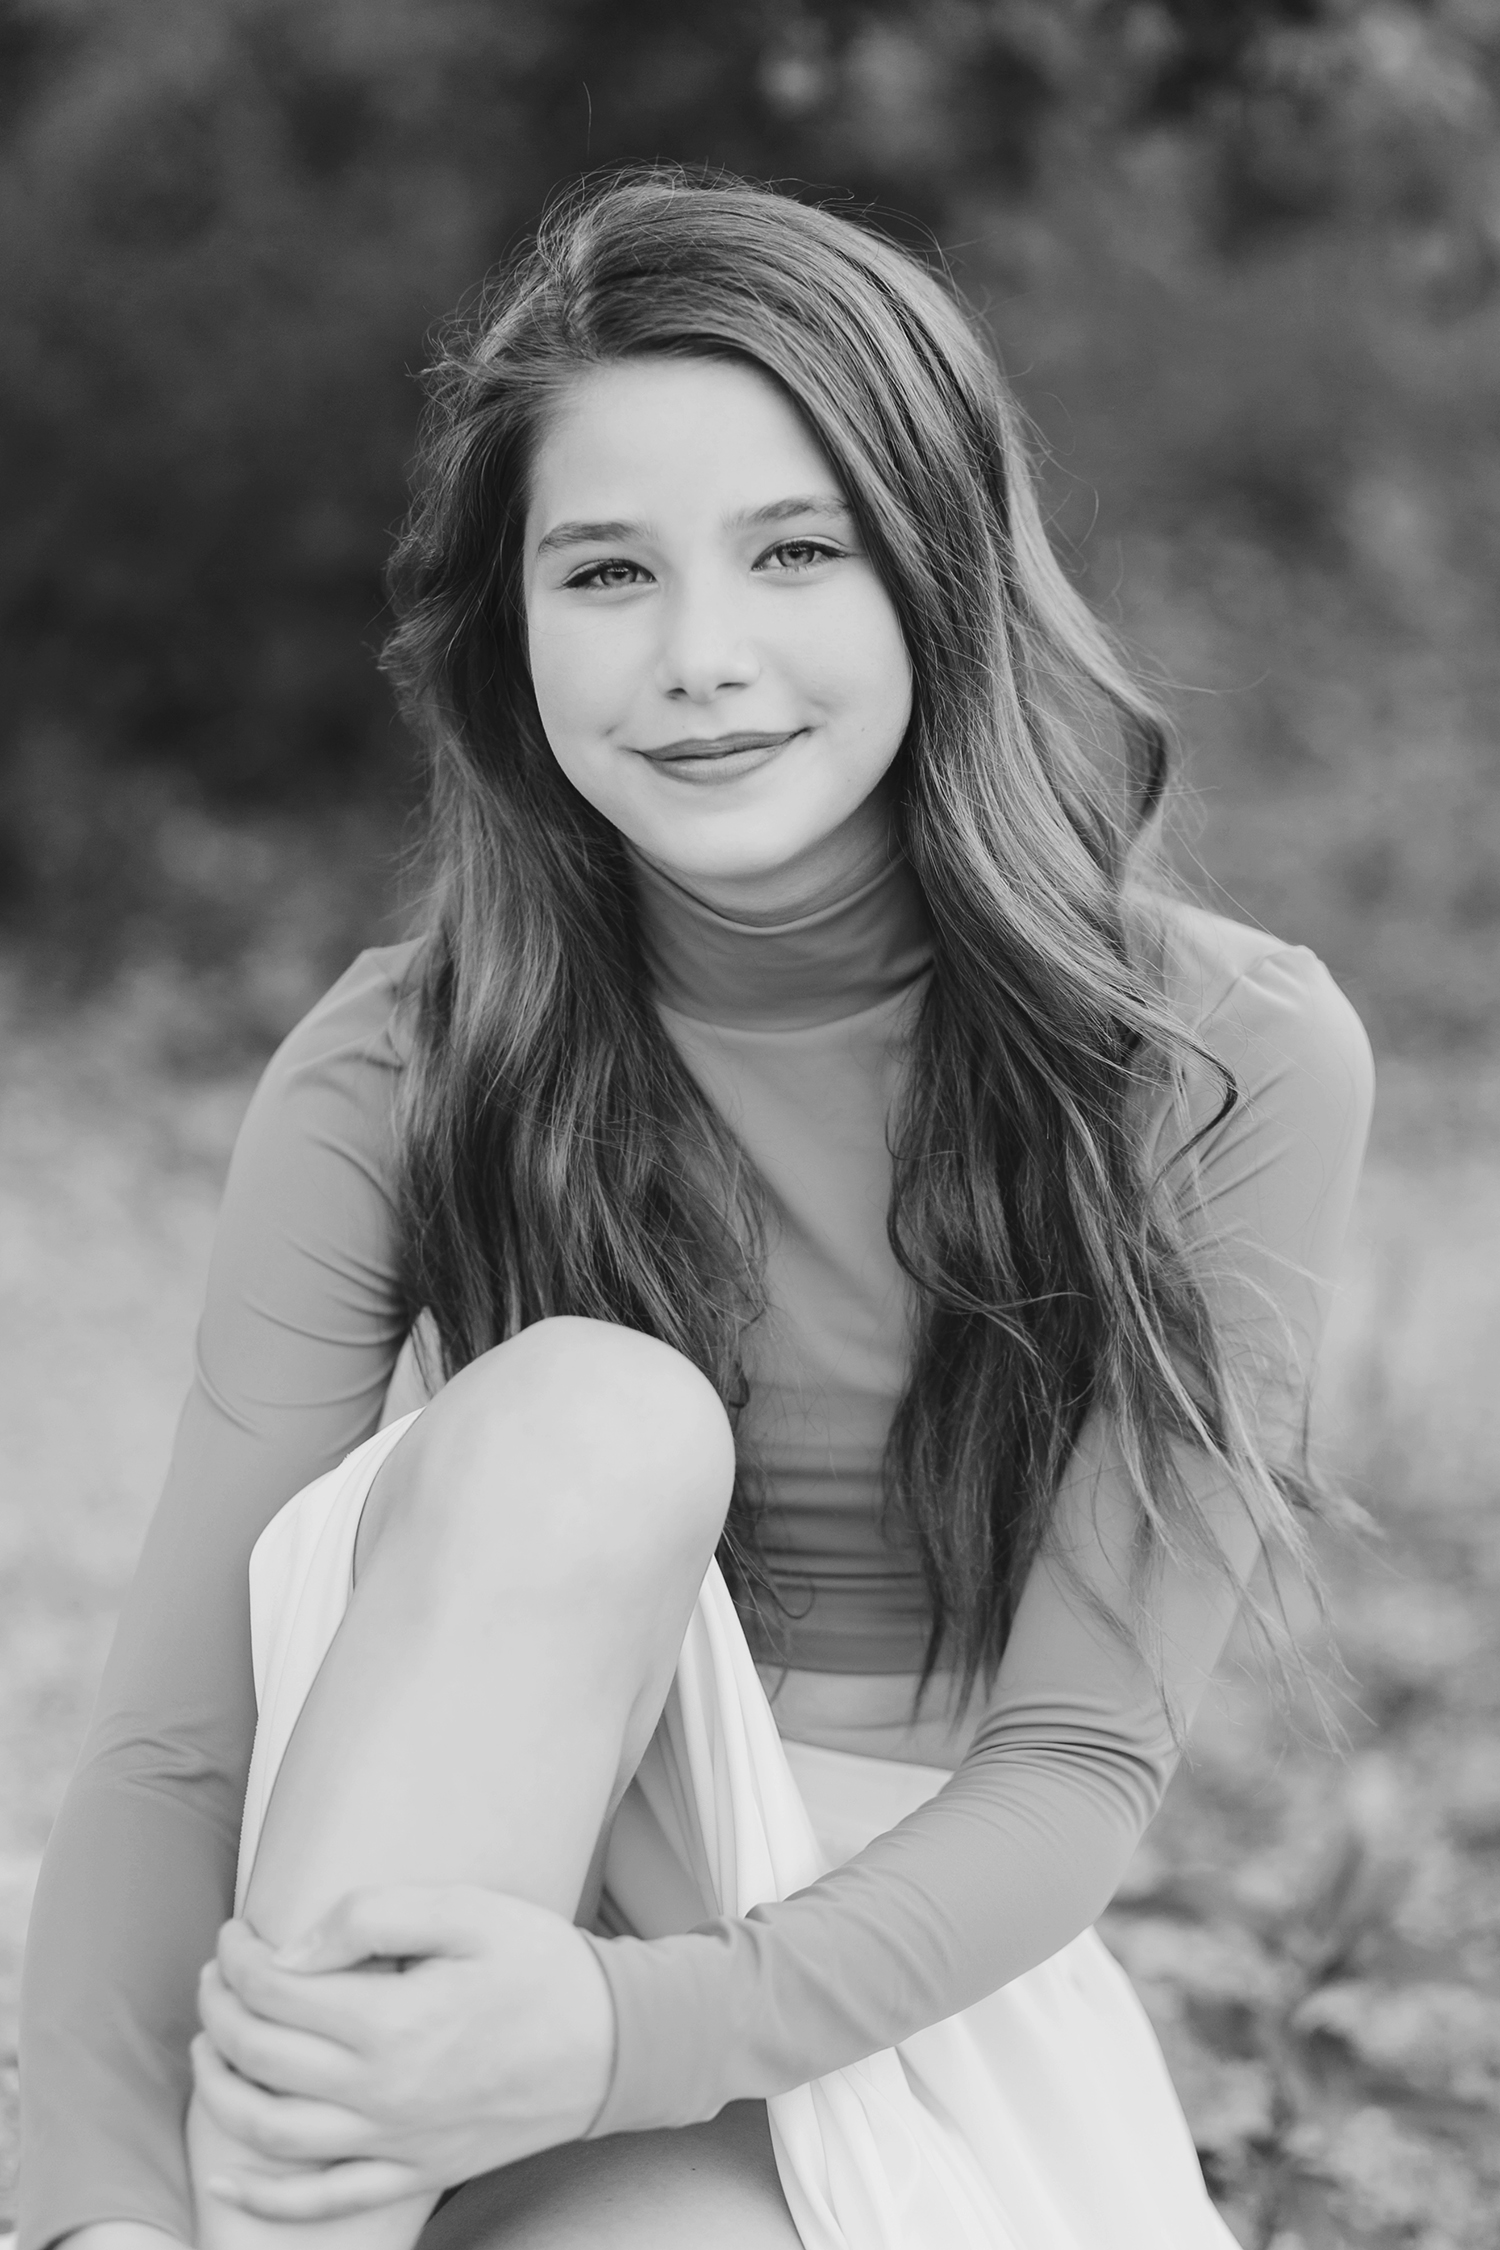 austin-dancer-teen-tween-portraits-kbp08.jpg